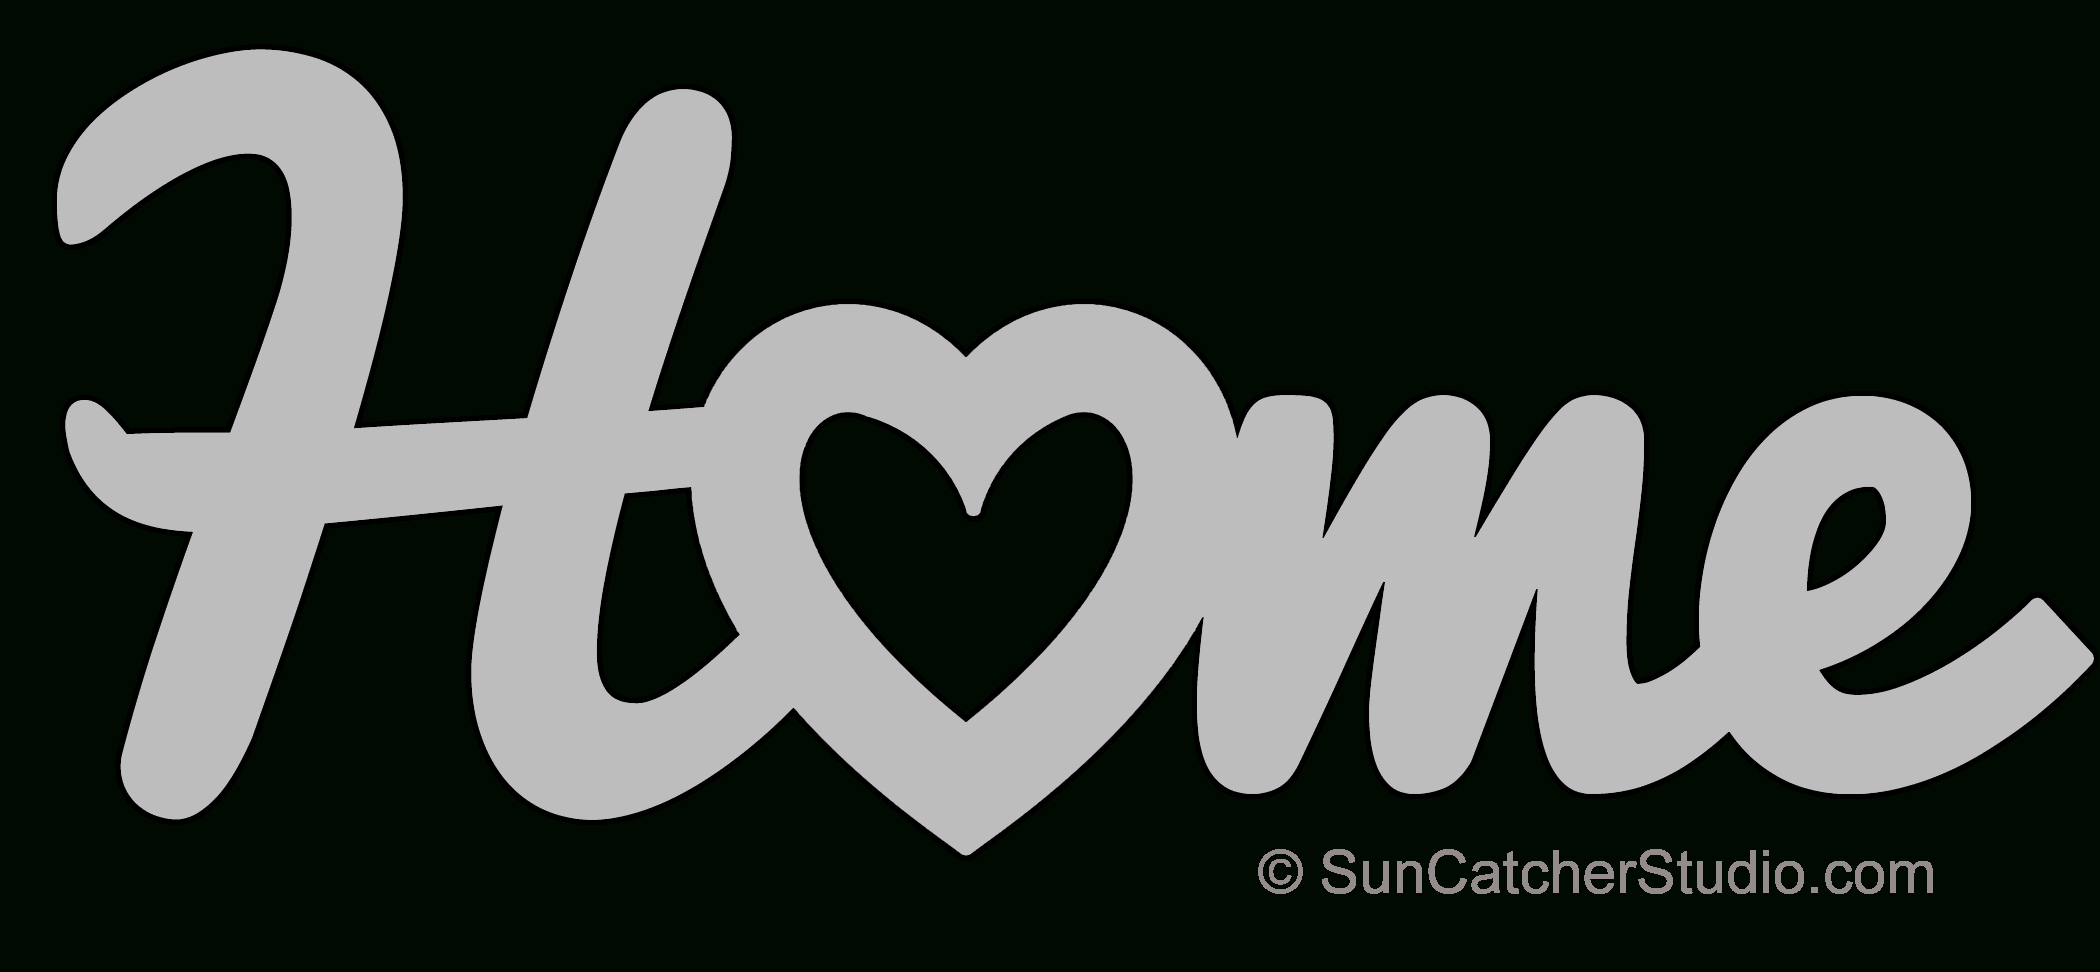 Home Heart – Pattern, Template, Stencil, Printable Word Art Design - Scroll Saw Patterns Free Printable